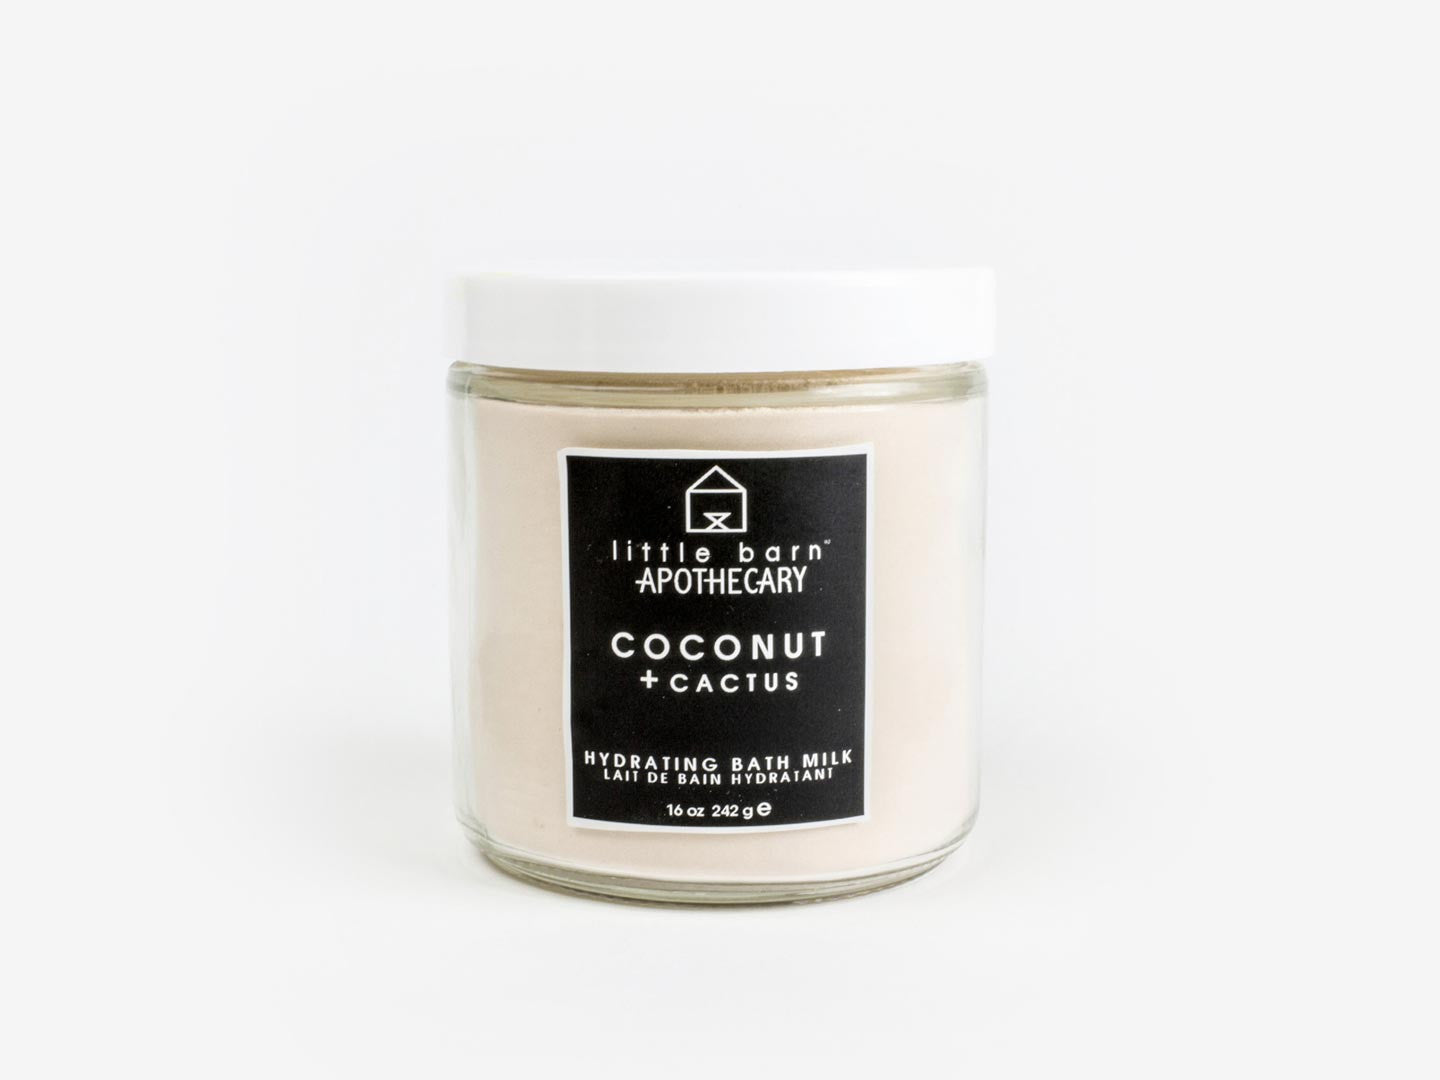 Bath Milk / Body Scrub